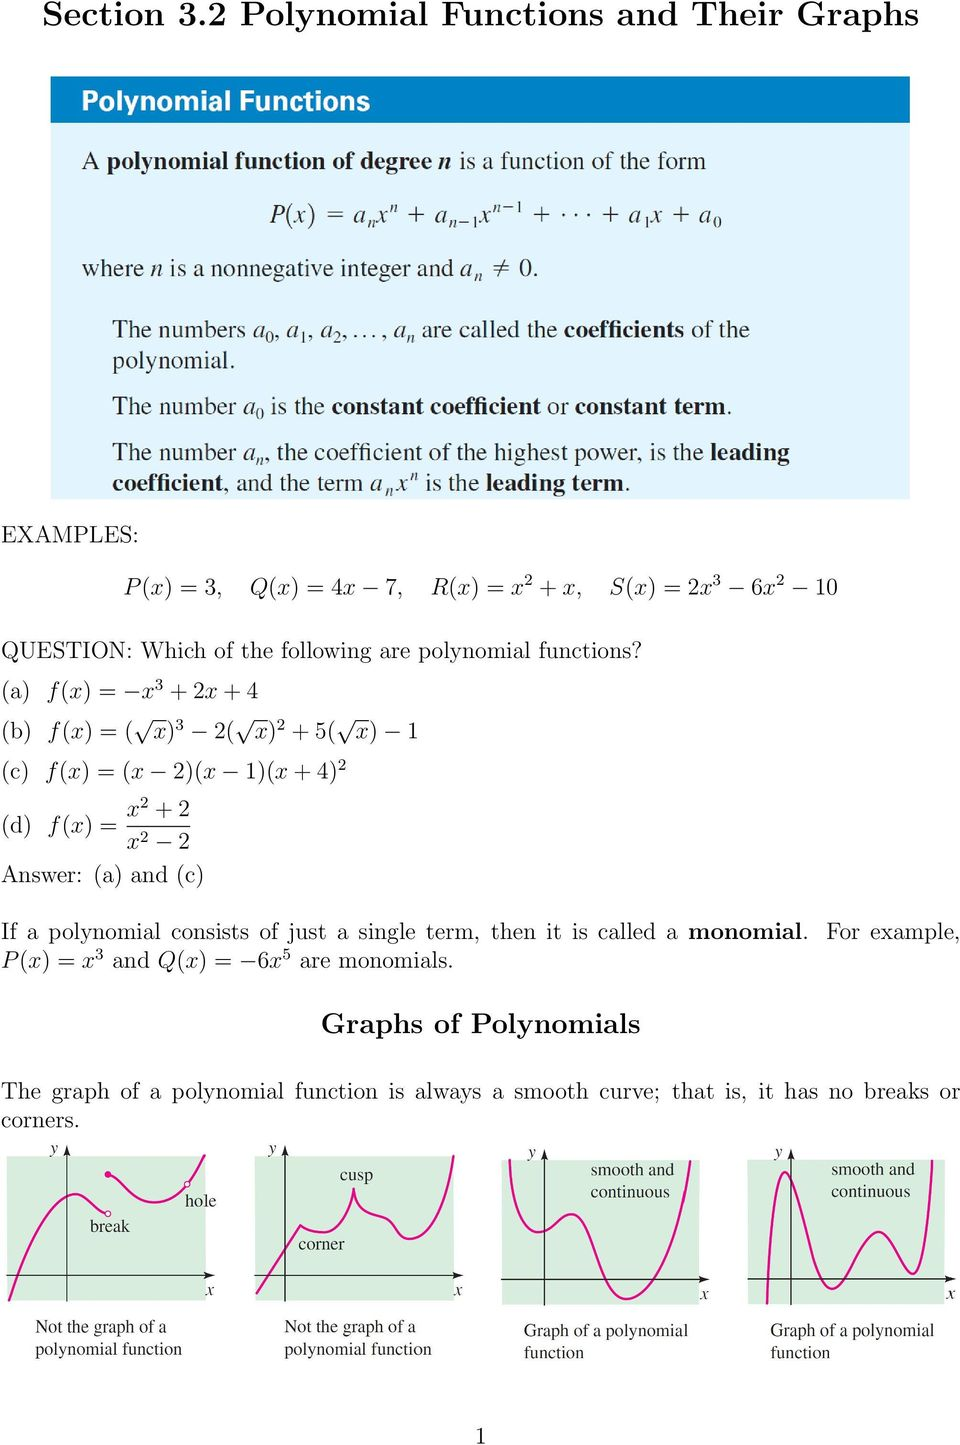 following are polynomial functions?